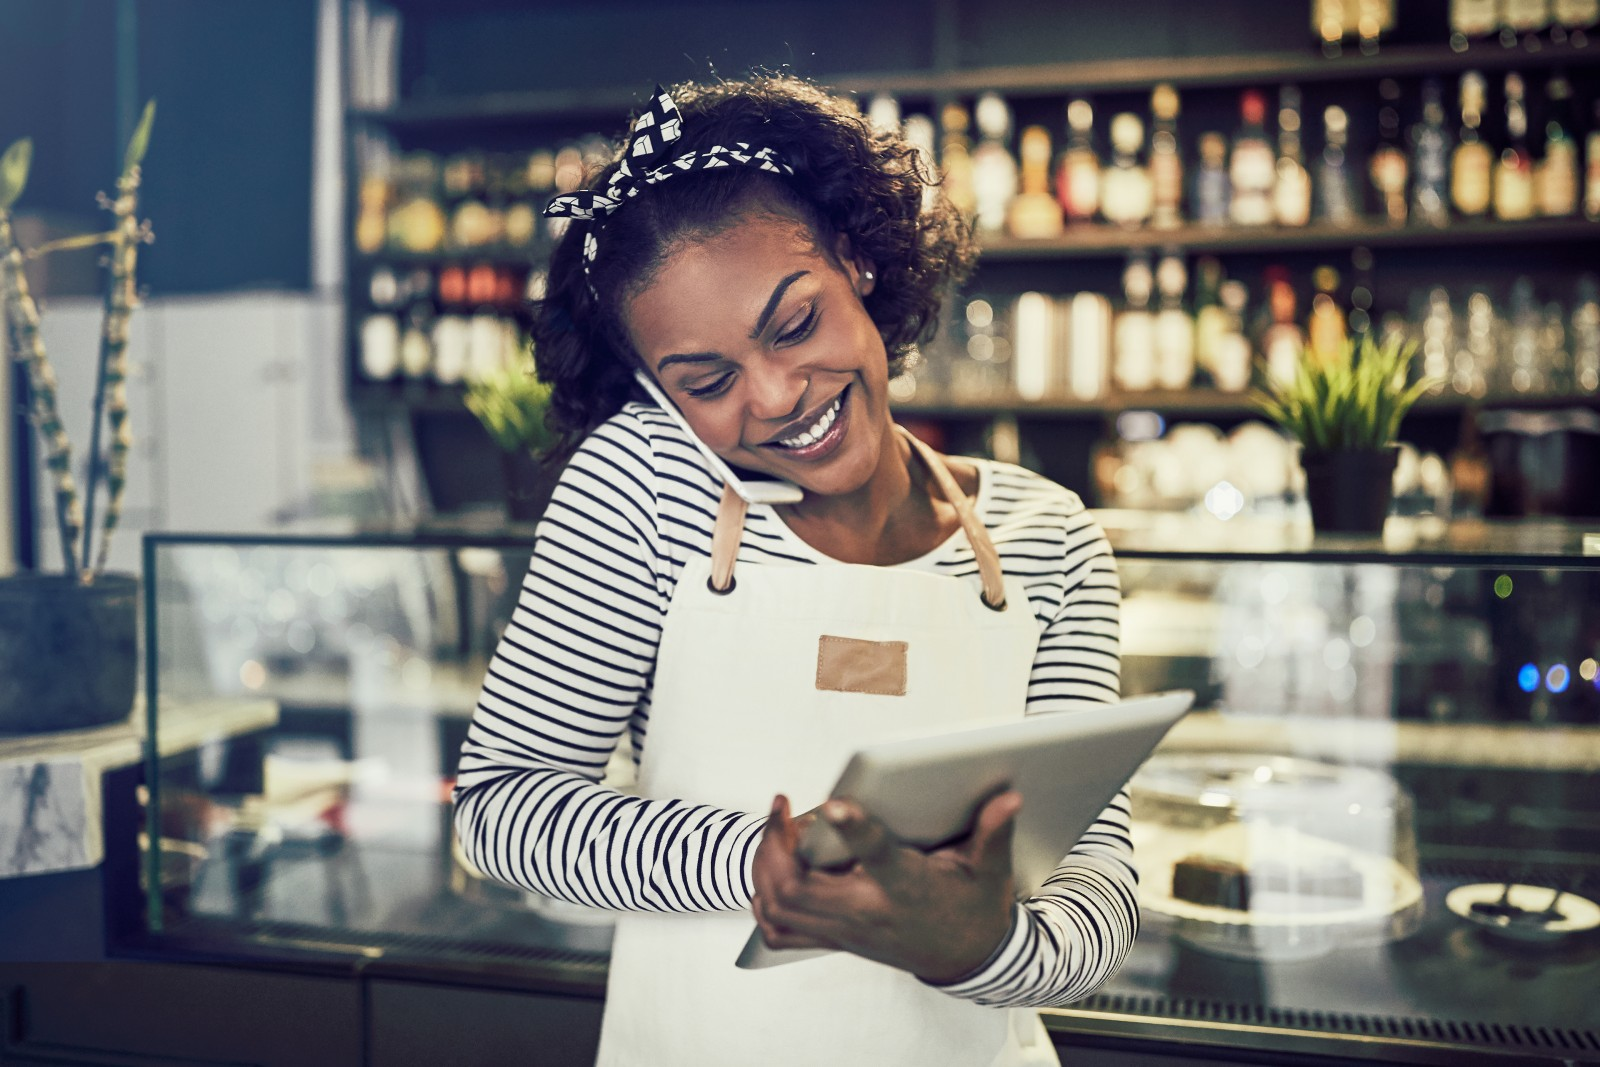 12 Reasons Why Small Businesses Need Digital Marketing